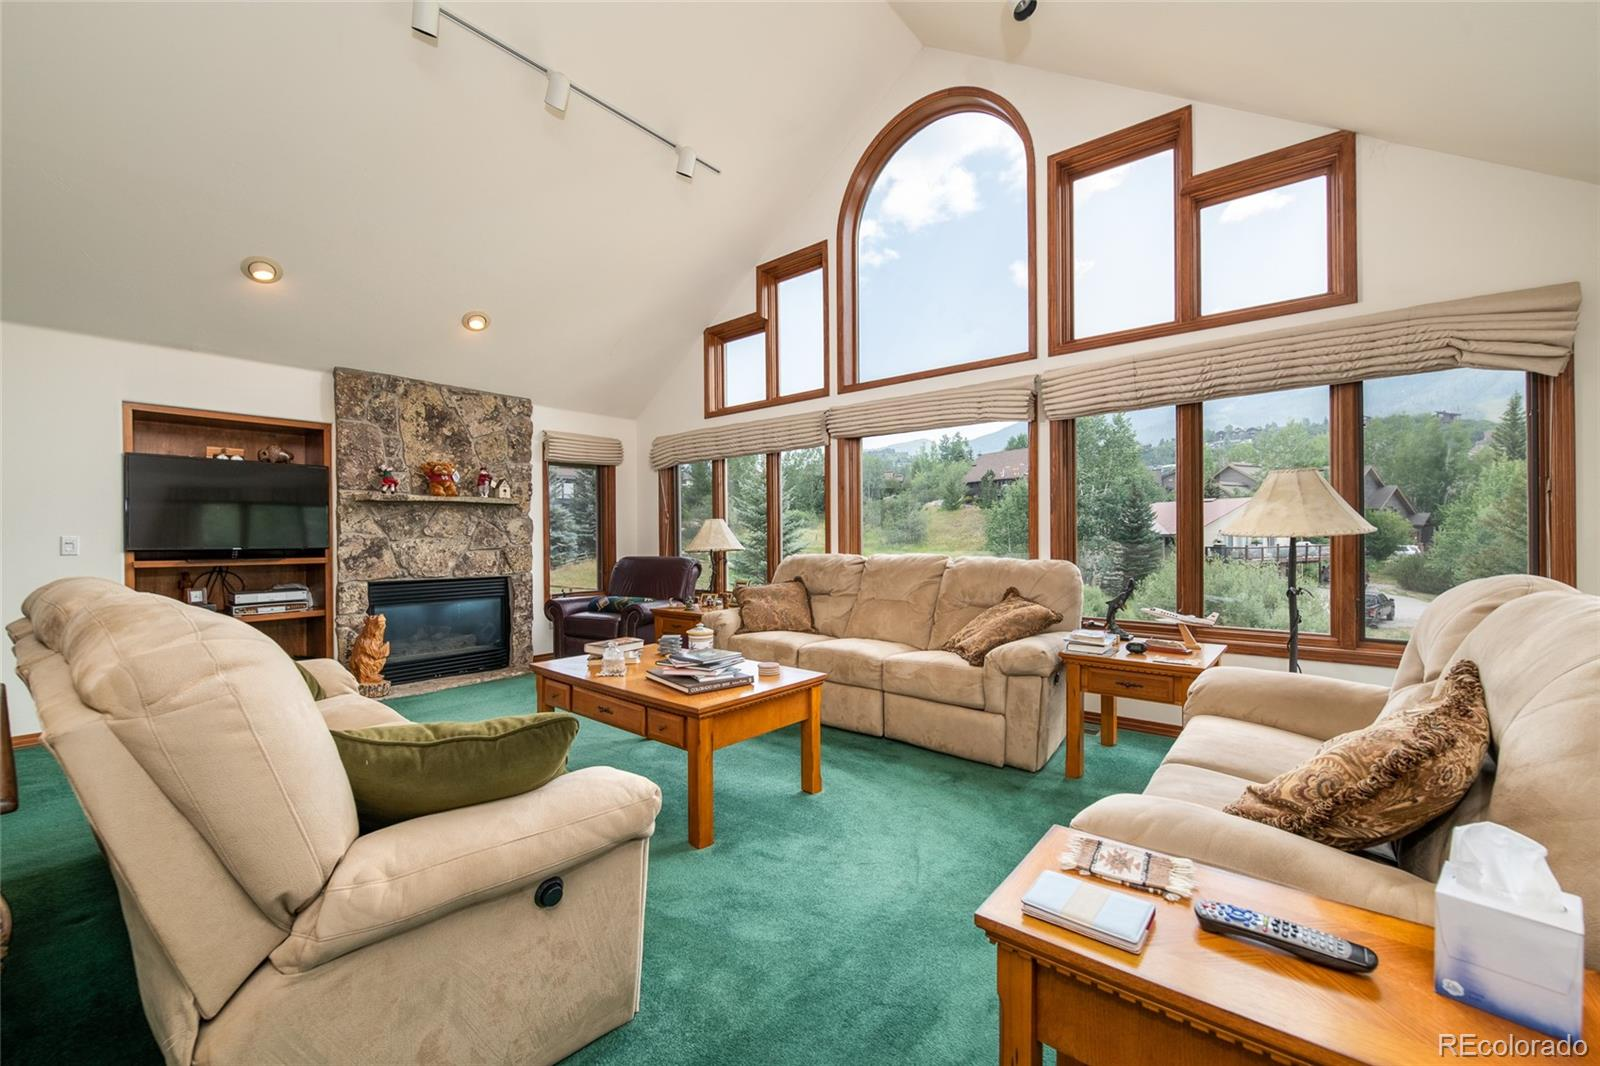 Prime location in the mountain area with huge views of the ski mountain!  The vaulted ceilings and tremendous windows in the great room perfectly frame the ski area runs. This highly regarded, peaceful neighborhood is conveniently located close to the base area in the Fairway Meadows Subdivision.  Whether you are relaxing in the great room enjoying the warmth of the fireplace, or out on your large wrap-around deck, the spectacular views of the ski mountain will marvel and amaze you. Relax in your spacious master suite located on its own dedicated floor offering a luxurious bathroom with walk-in closet and private deck with views of Emerald Mountain. The main level offers a spacious kitchen, foyer, dining area, great room, and laundry room with utility sink. On the garden level, there is plenty of room to spread out with an additional living area, three bedrooms, and two bathrooms.  Offered completely furnished and ready for you to start enjoying the Steamboat lifestyle as your primary or secondary residence. Upgrades include new garage door and new full-size washer and dryer. Rolling Stone Ranch Golf Membership available with Buyer paid transfer fee. Conveniently located close to shopping, dining, the Yampa Valley Medical Center and the free bus stop. Take advantage of this extraordinary opportunity to become a homeowner in this distinguished mountain community.